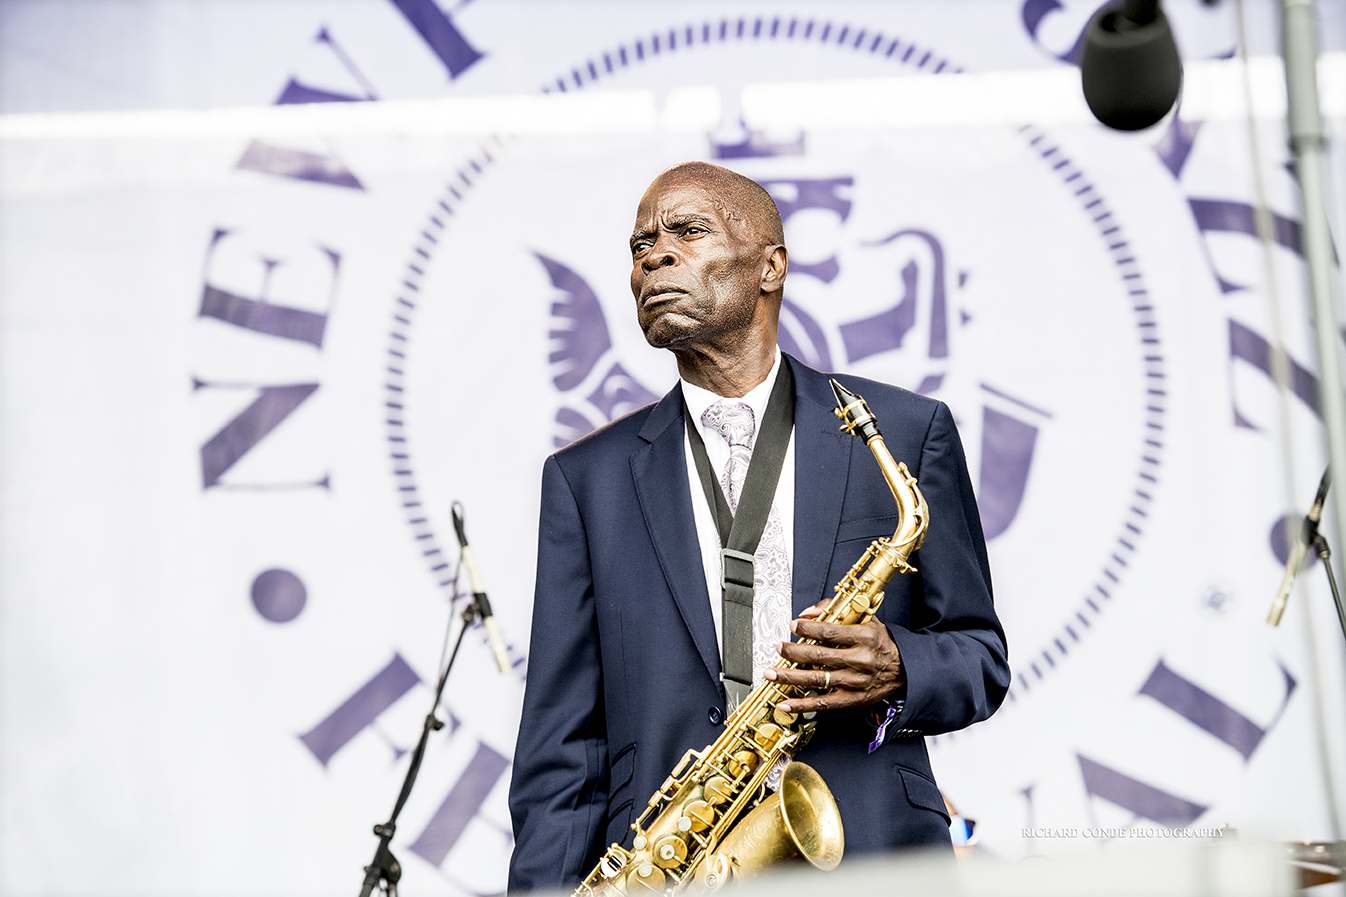 Maceo Parker at the 2017 Newport Jazz Festival